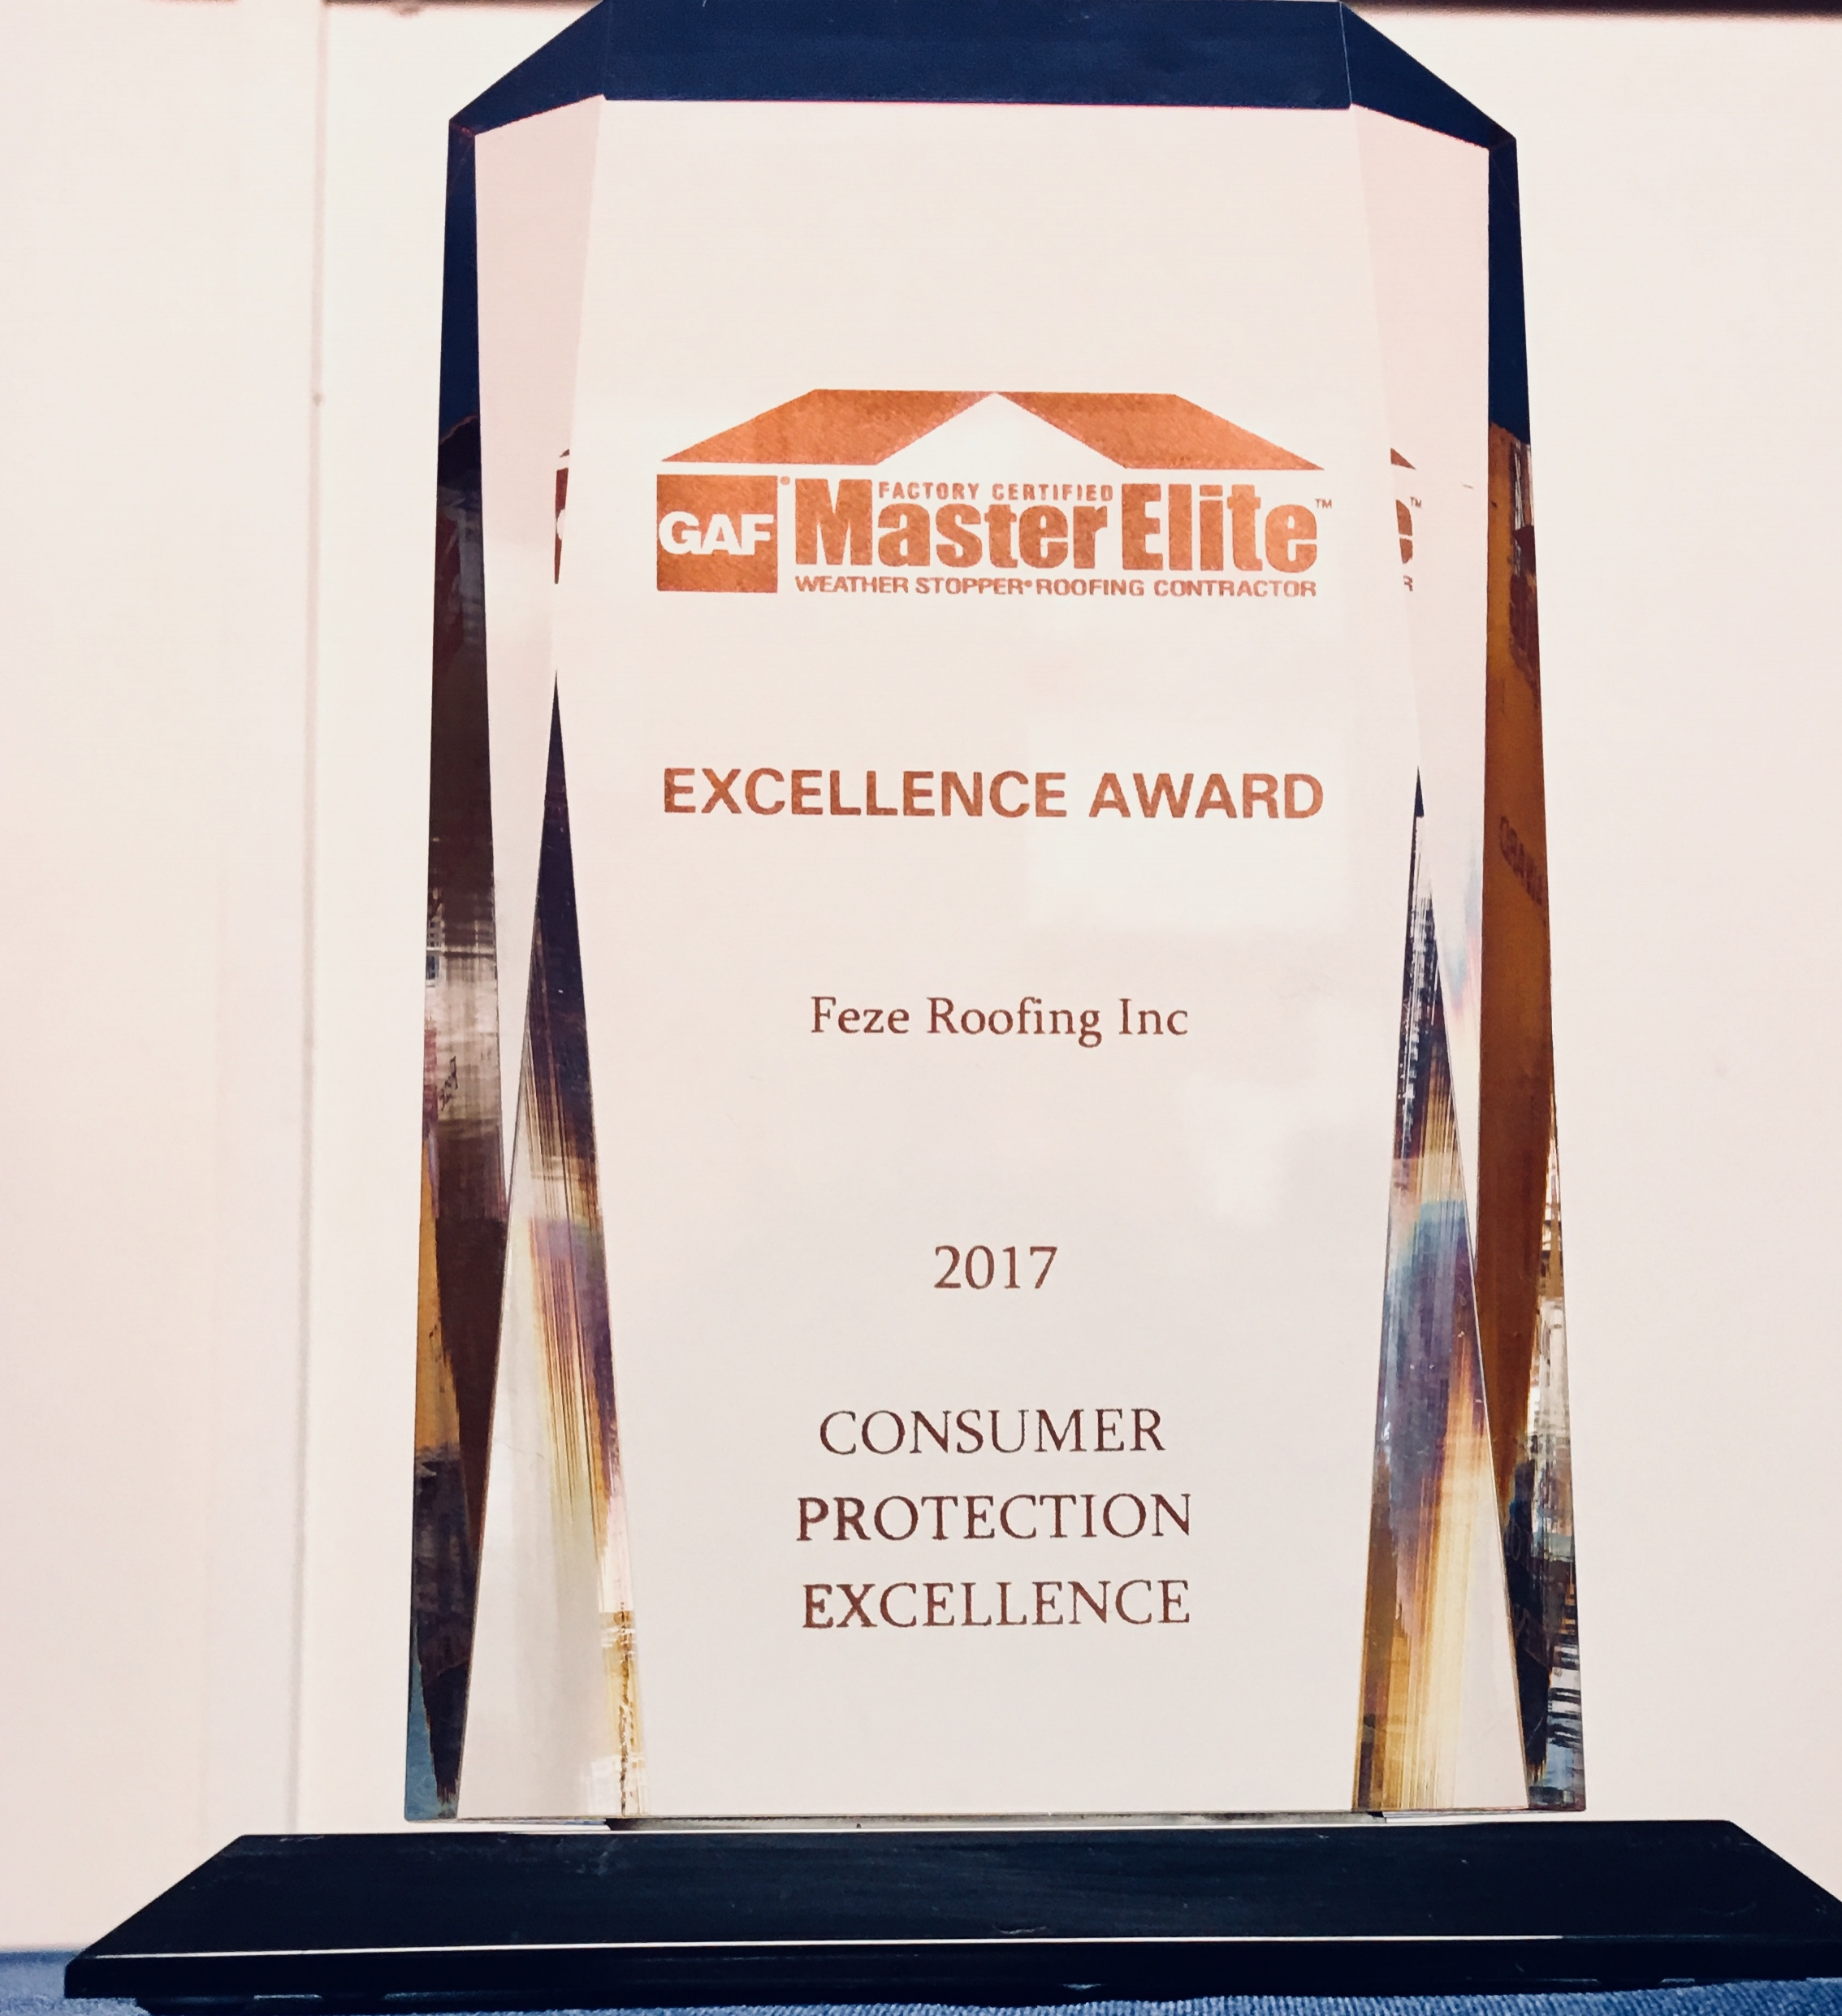 Feze Roofing Recognized For Consumer Protection Excellence - Feze Roofing, Inc.© is pleased and grateful to announce that we have been recognized by GAF for Consumer Protection Excellence for 2017.